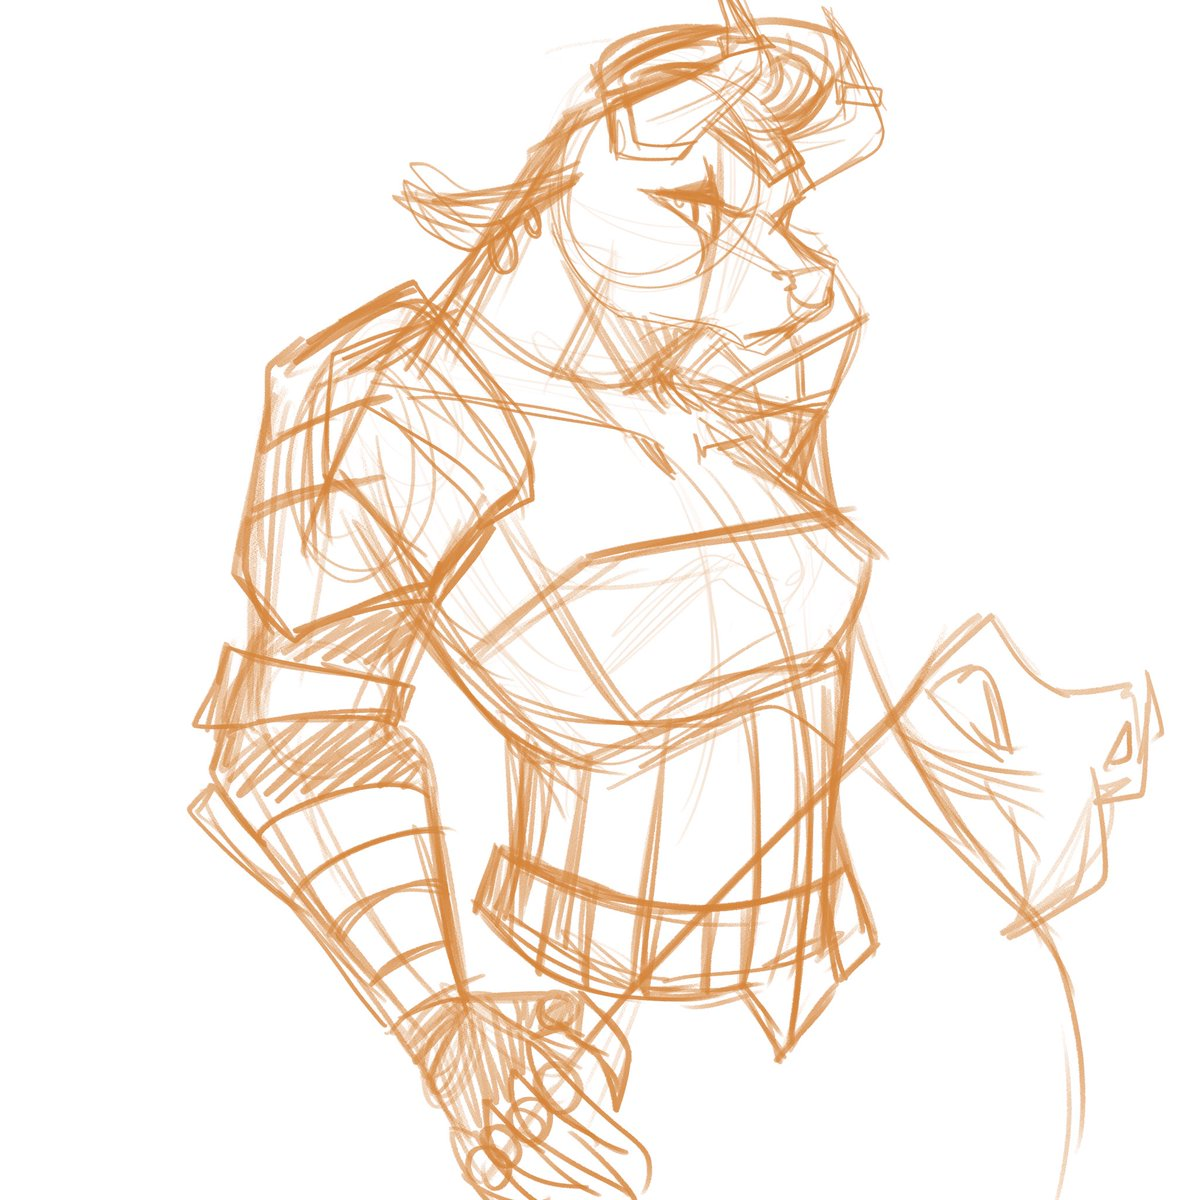 My #interpvscanon sketch of a fem minotaur from the legends of runeterra new expansion